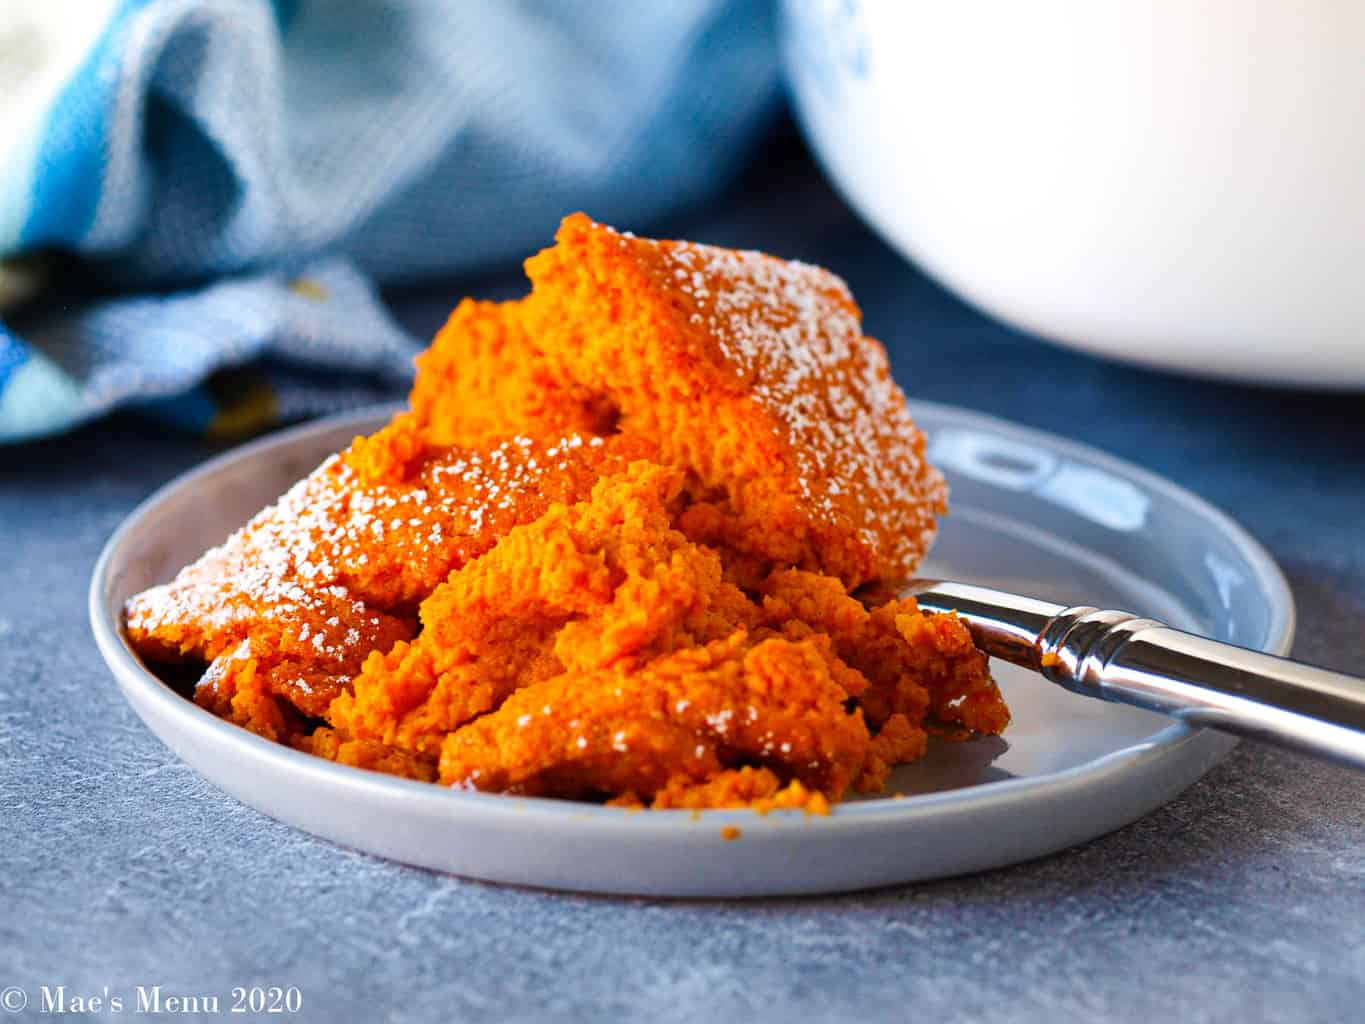 An up-close shot of a large scoop of carrot souffle on a smoky blue small plate